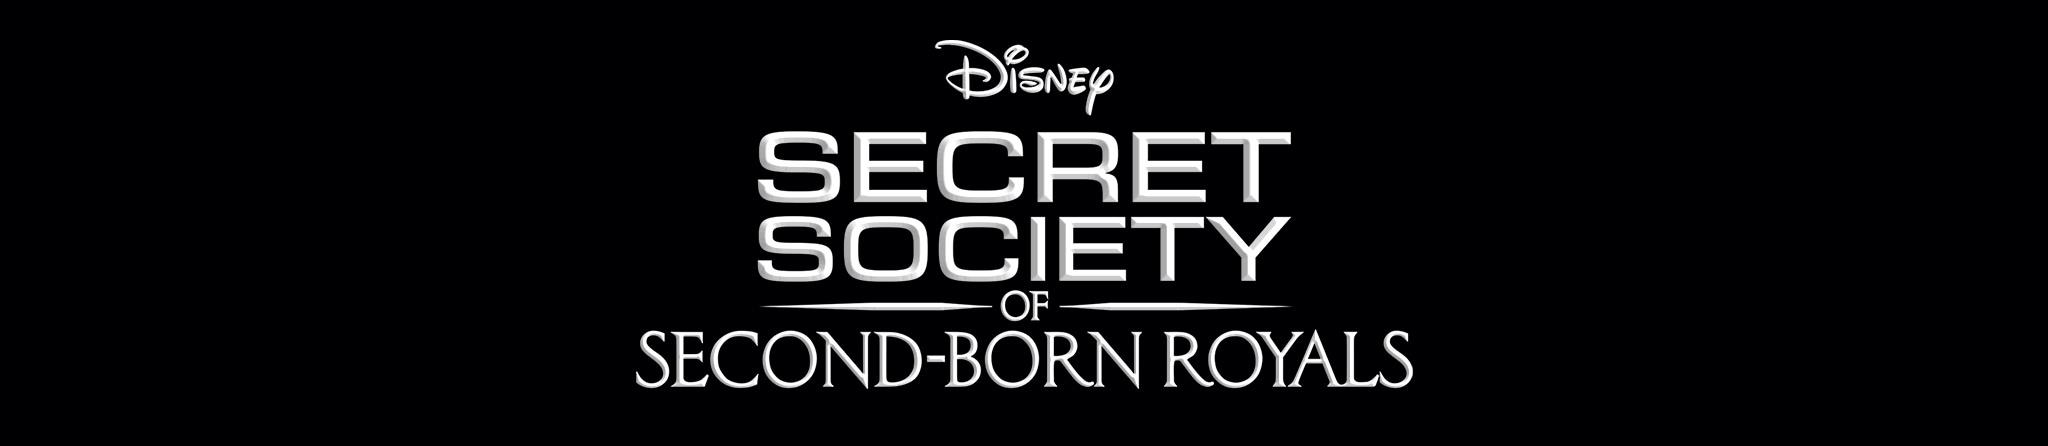 Disney | Secret Society of Second-Born Royals